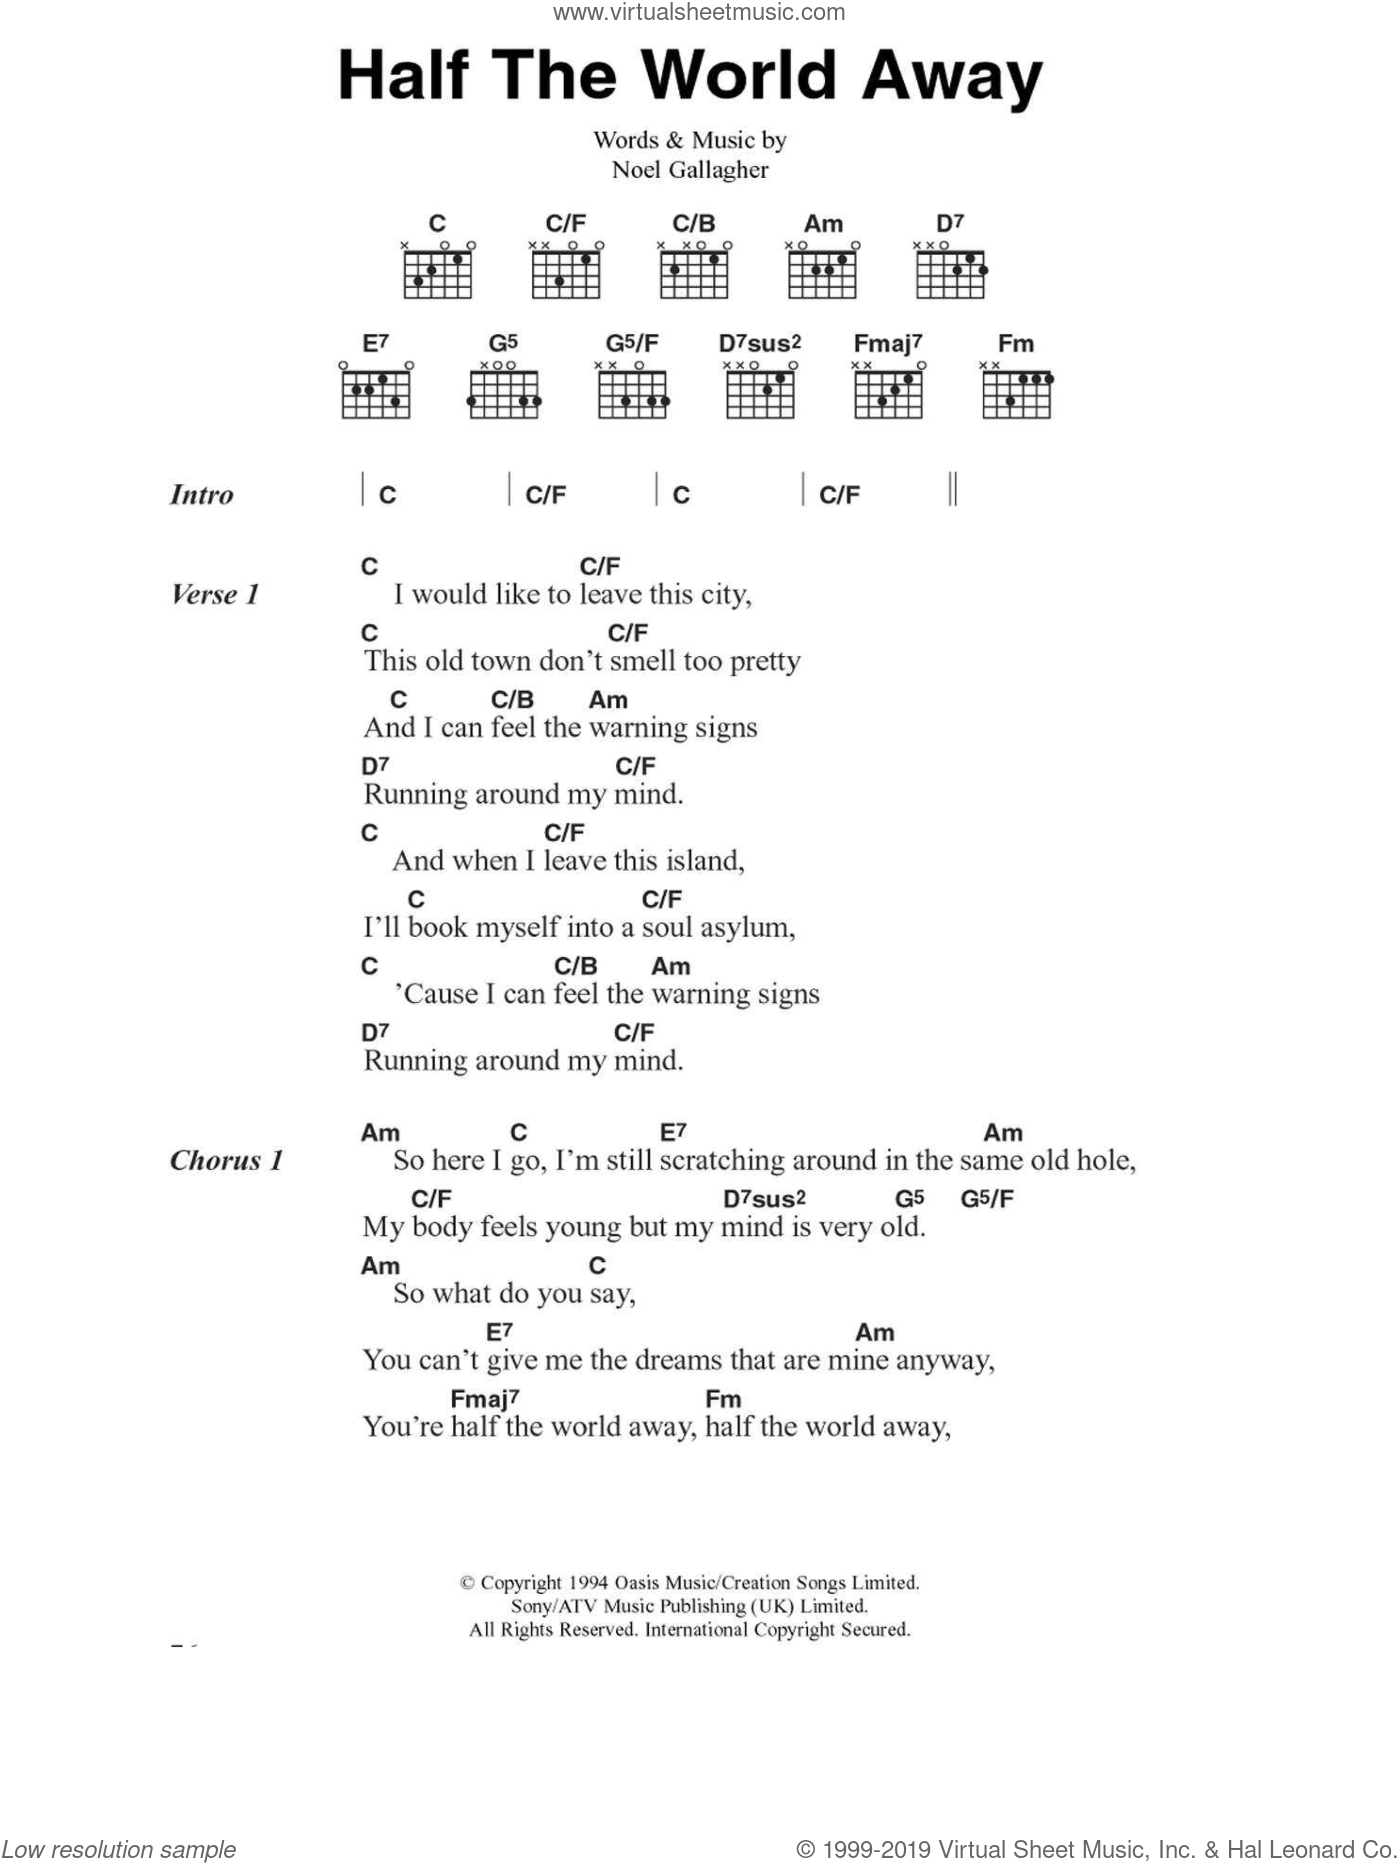 Oasis - Half The World Away sheet music for guitar (chords) [PDF]